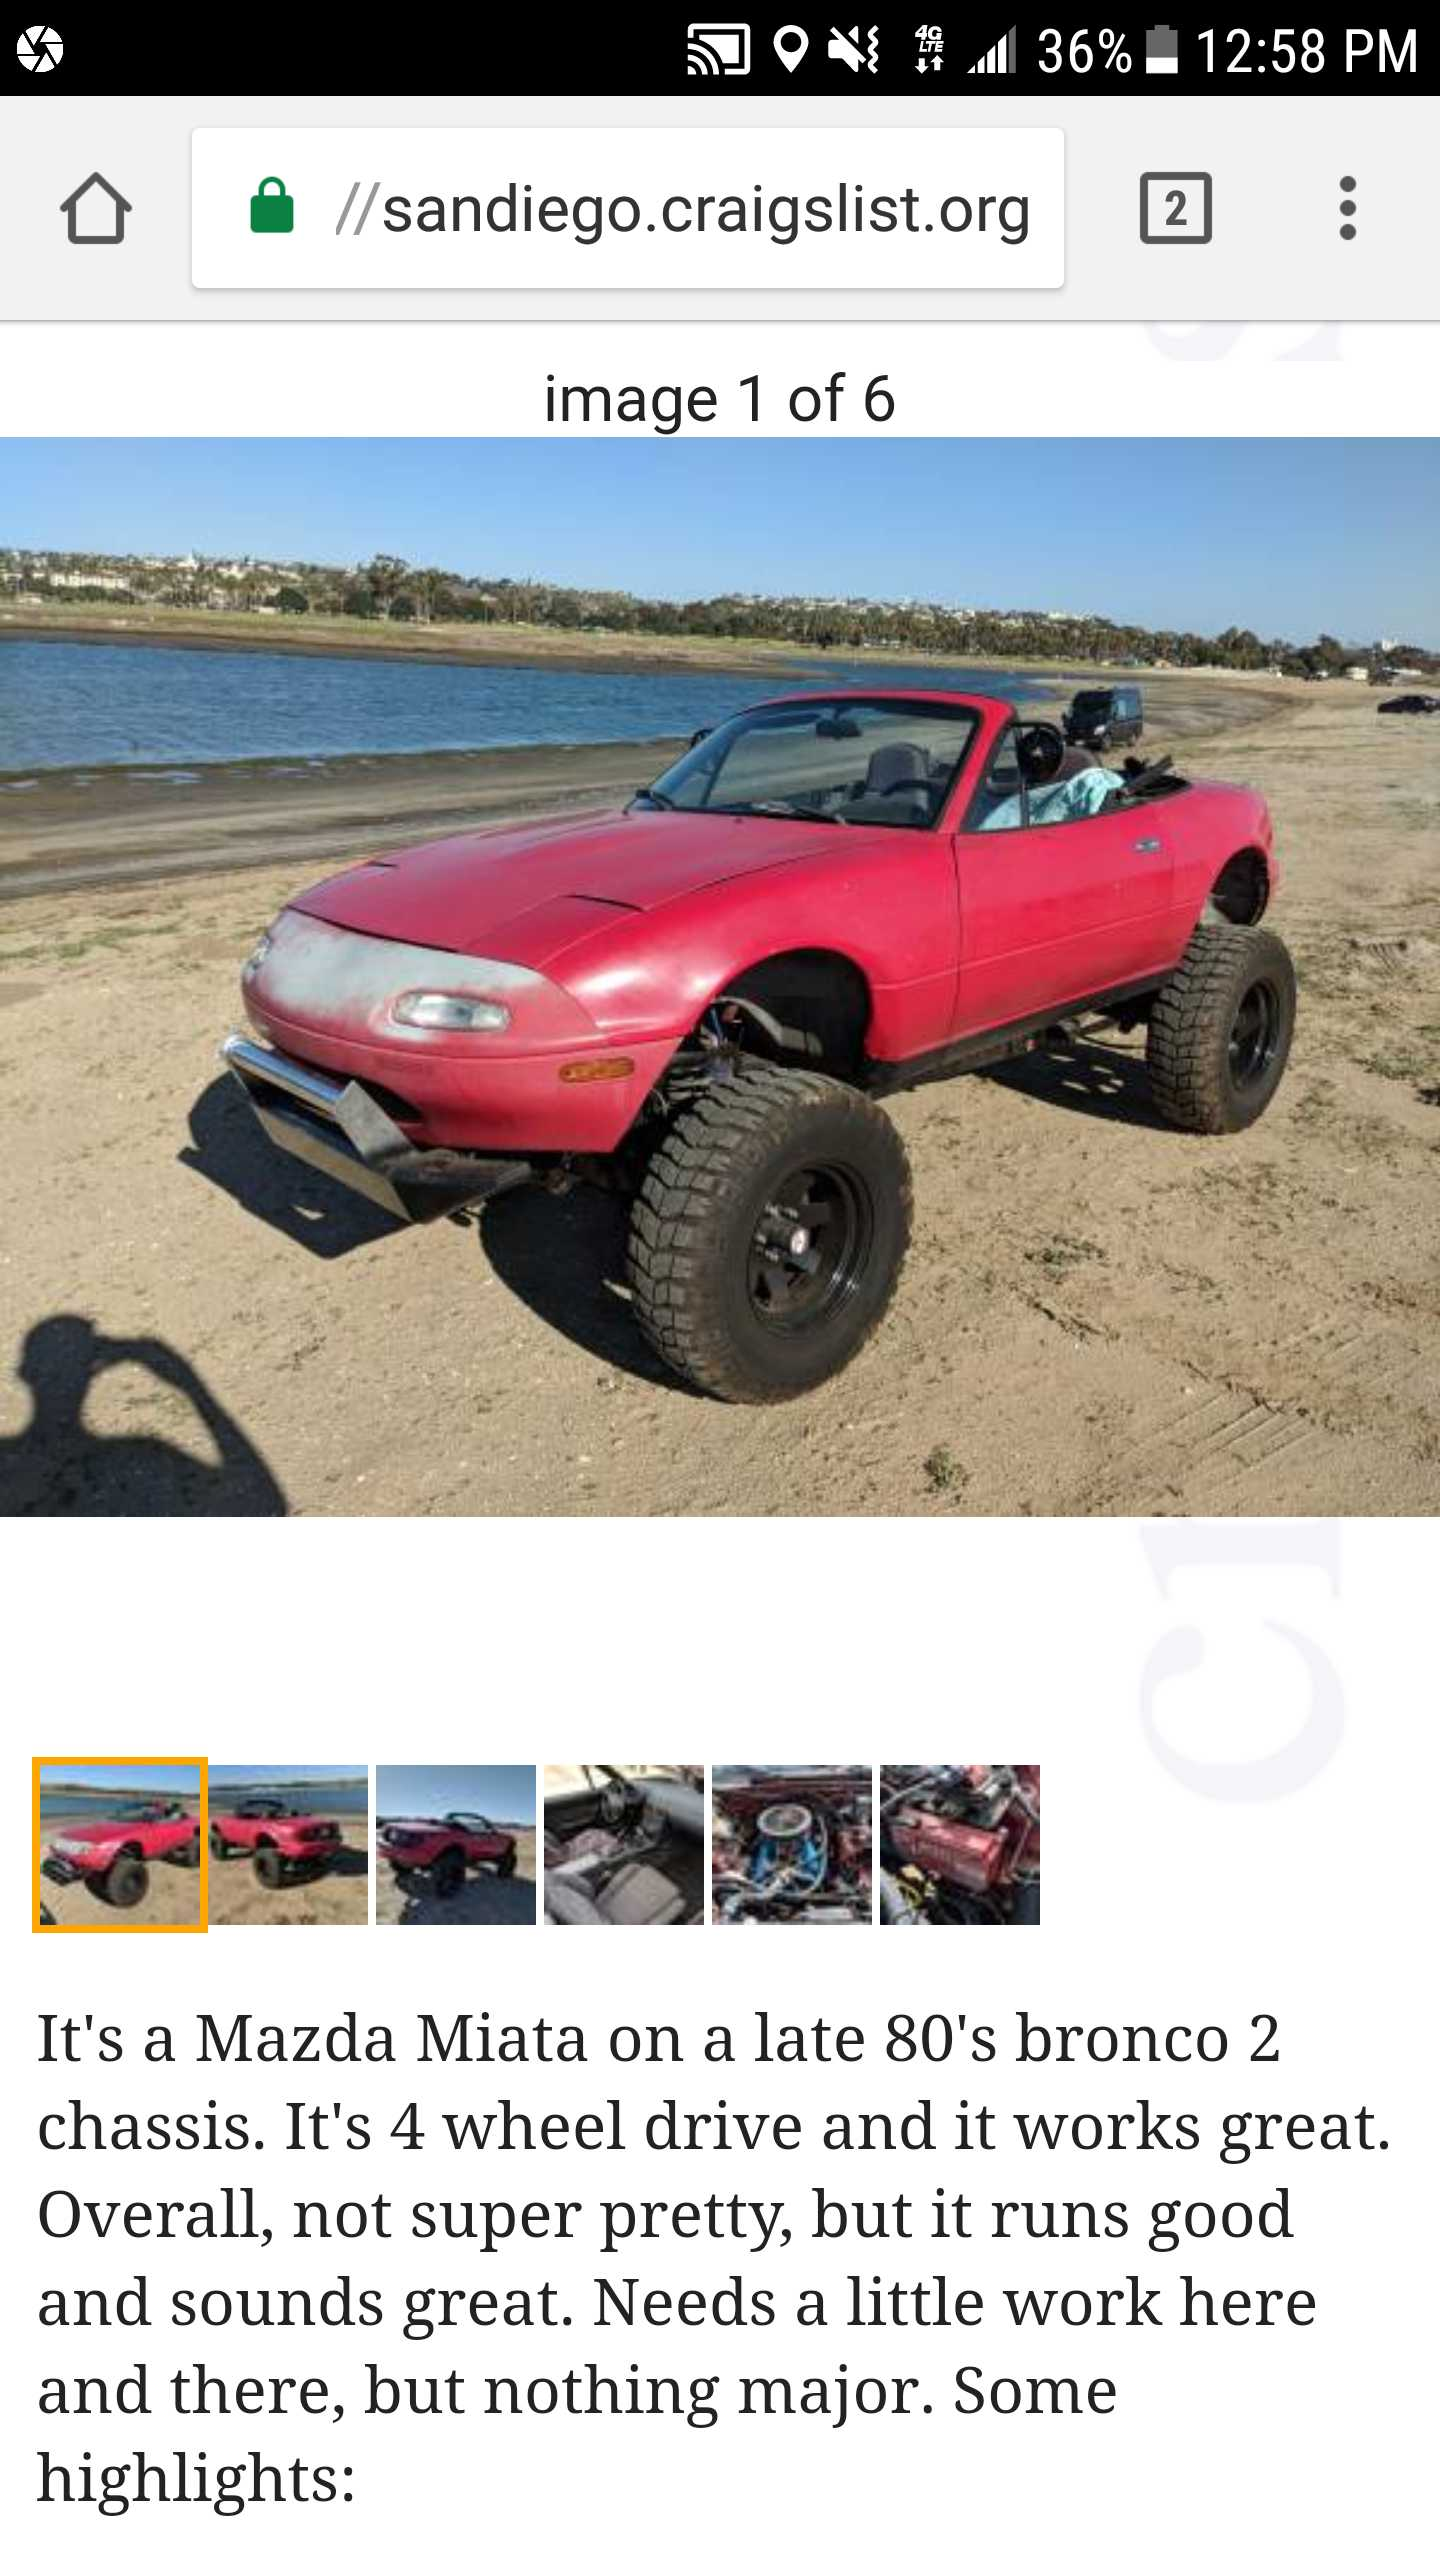 Craigslist Cars For Sale New Hampshire : craigslist, hampshire, Ultimate, Mazda:, Mazda, Miata, Craigslist